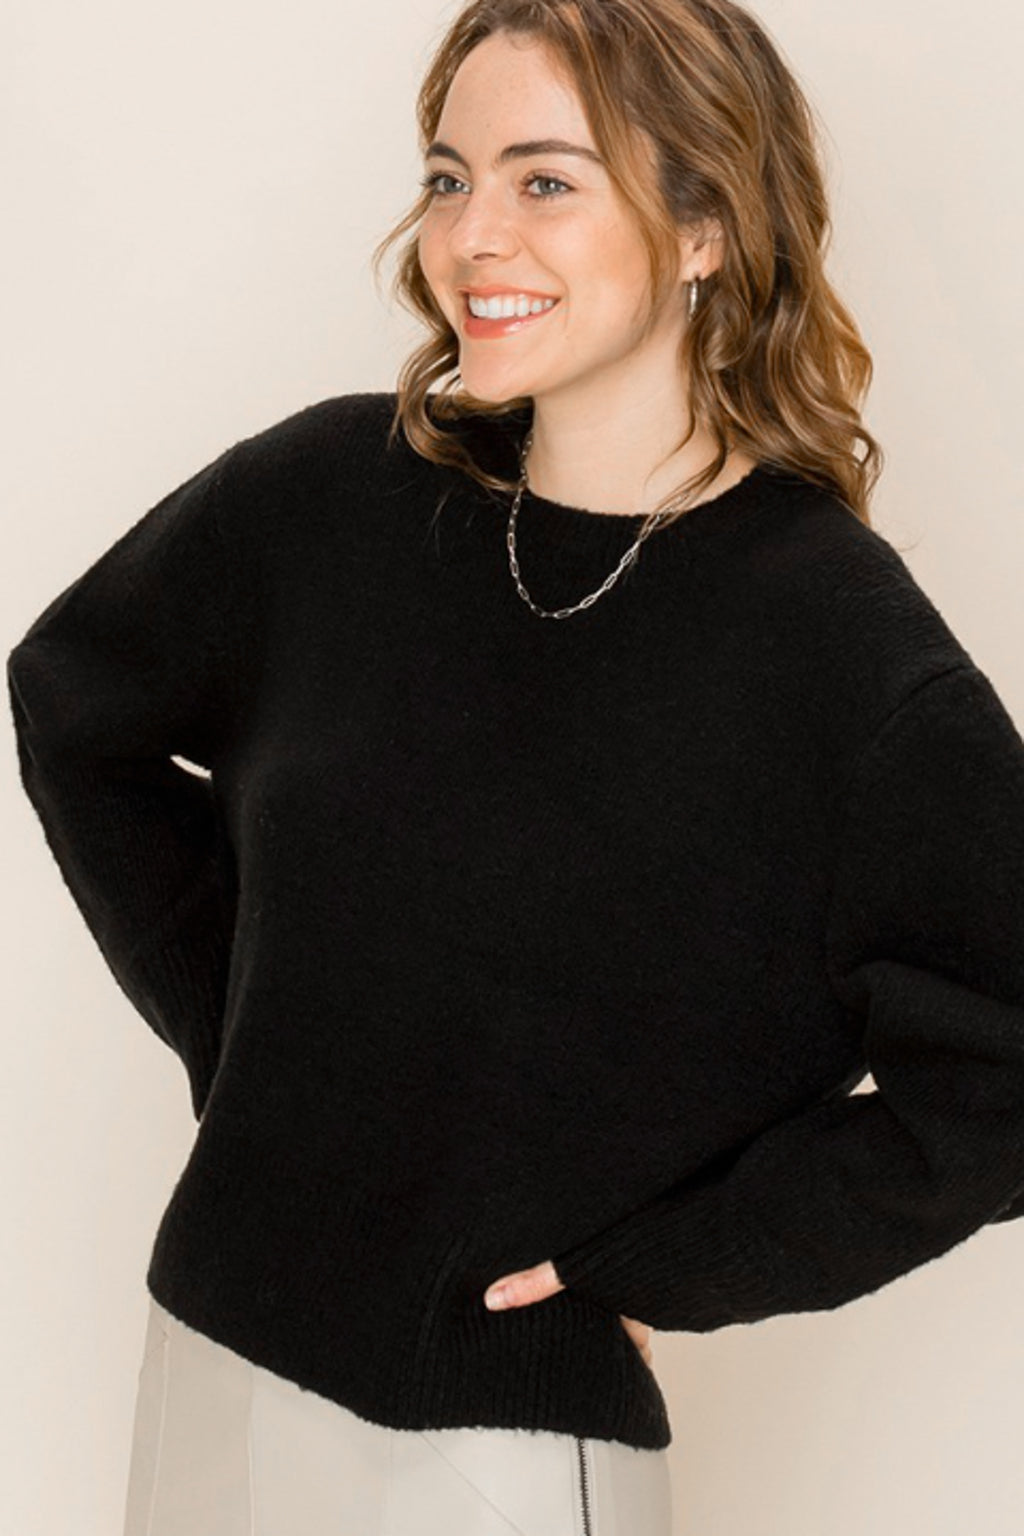 Megan Soft Knit Sweater